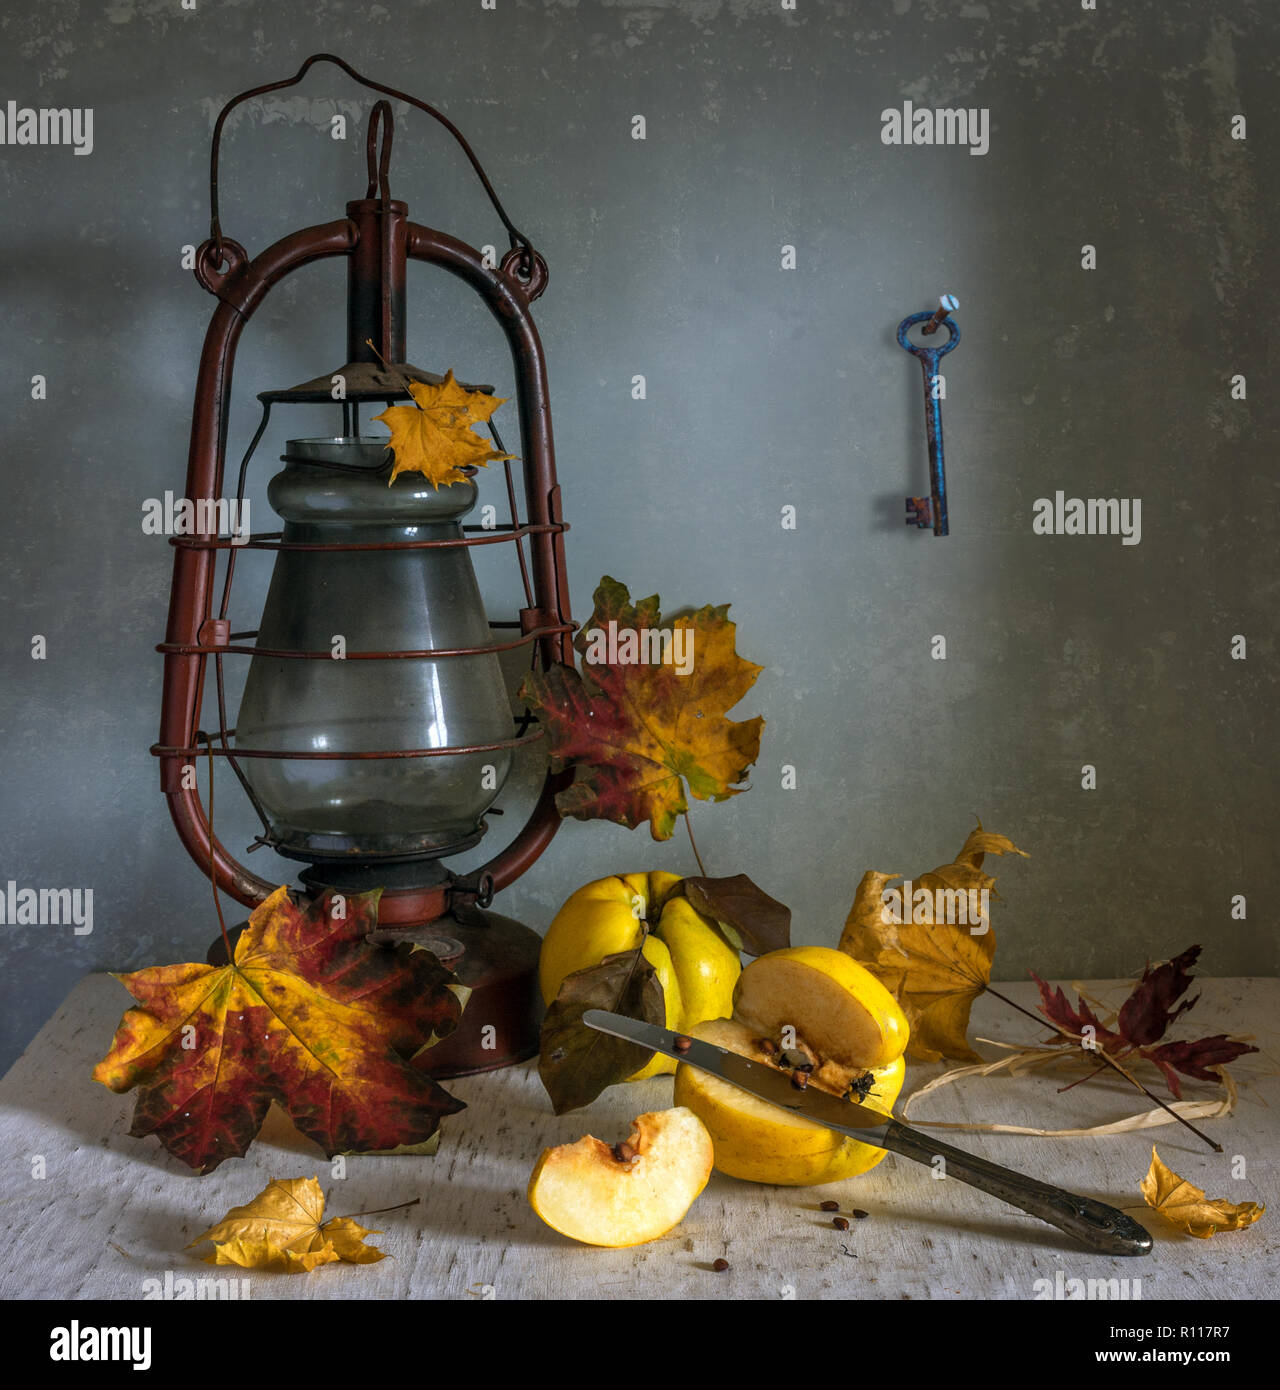 still life with quince, autumn leaves and kerosene lamp. vitamins. pick ripe fruit. vintage - Stock Image